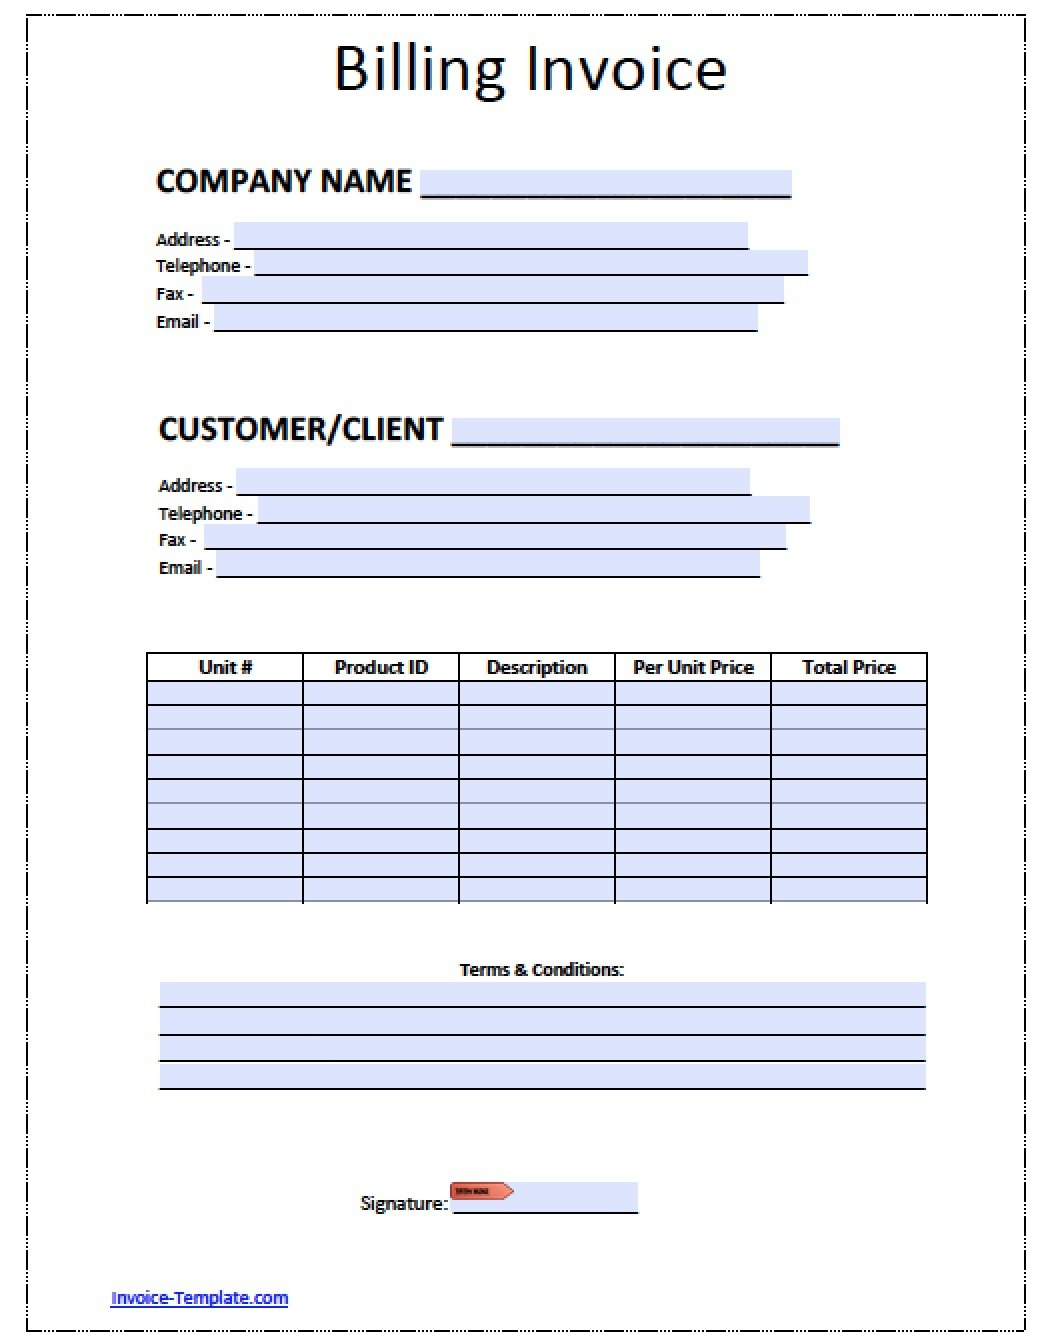 Bill Invoice Sample   Demir.iso Consulting.co And Billing Invoice Sample